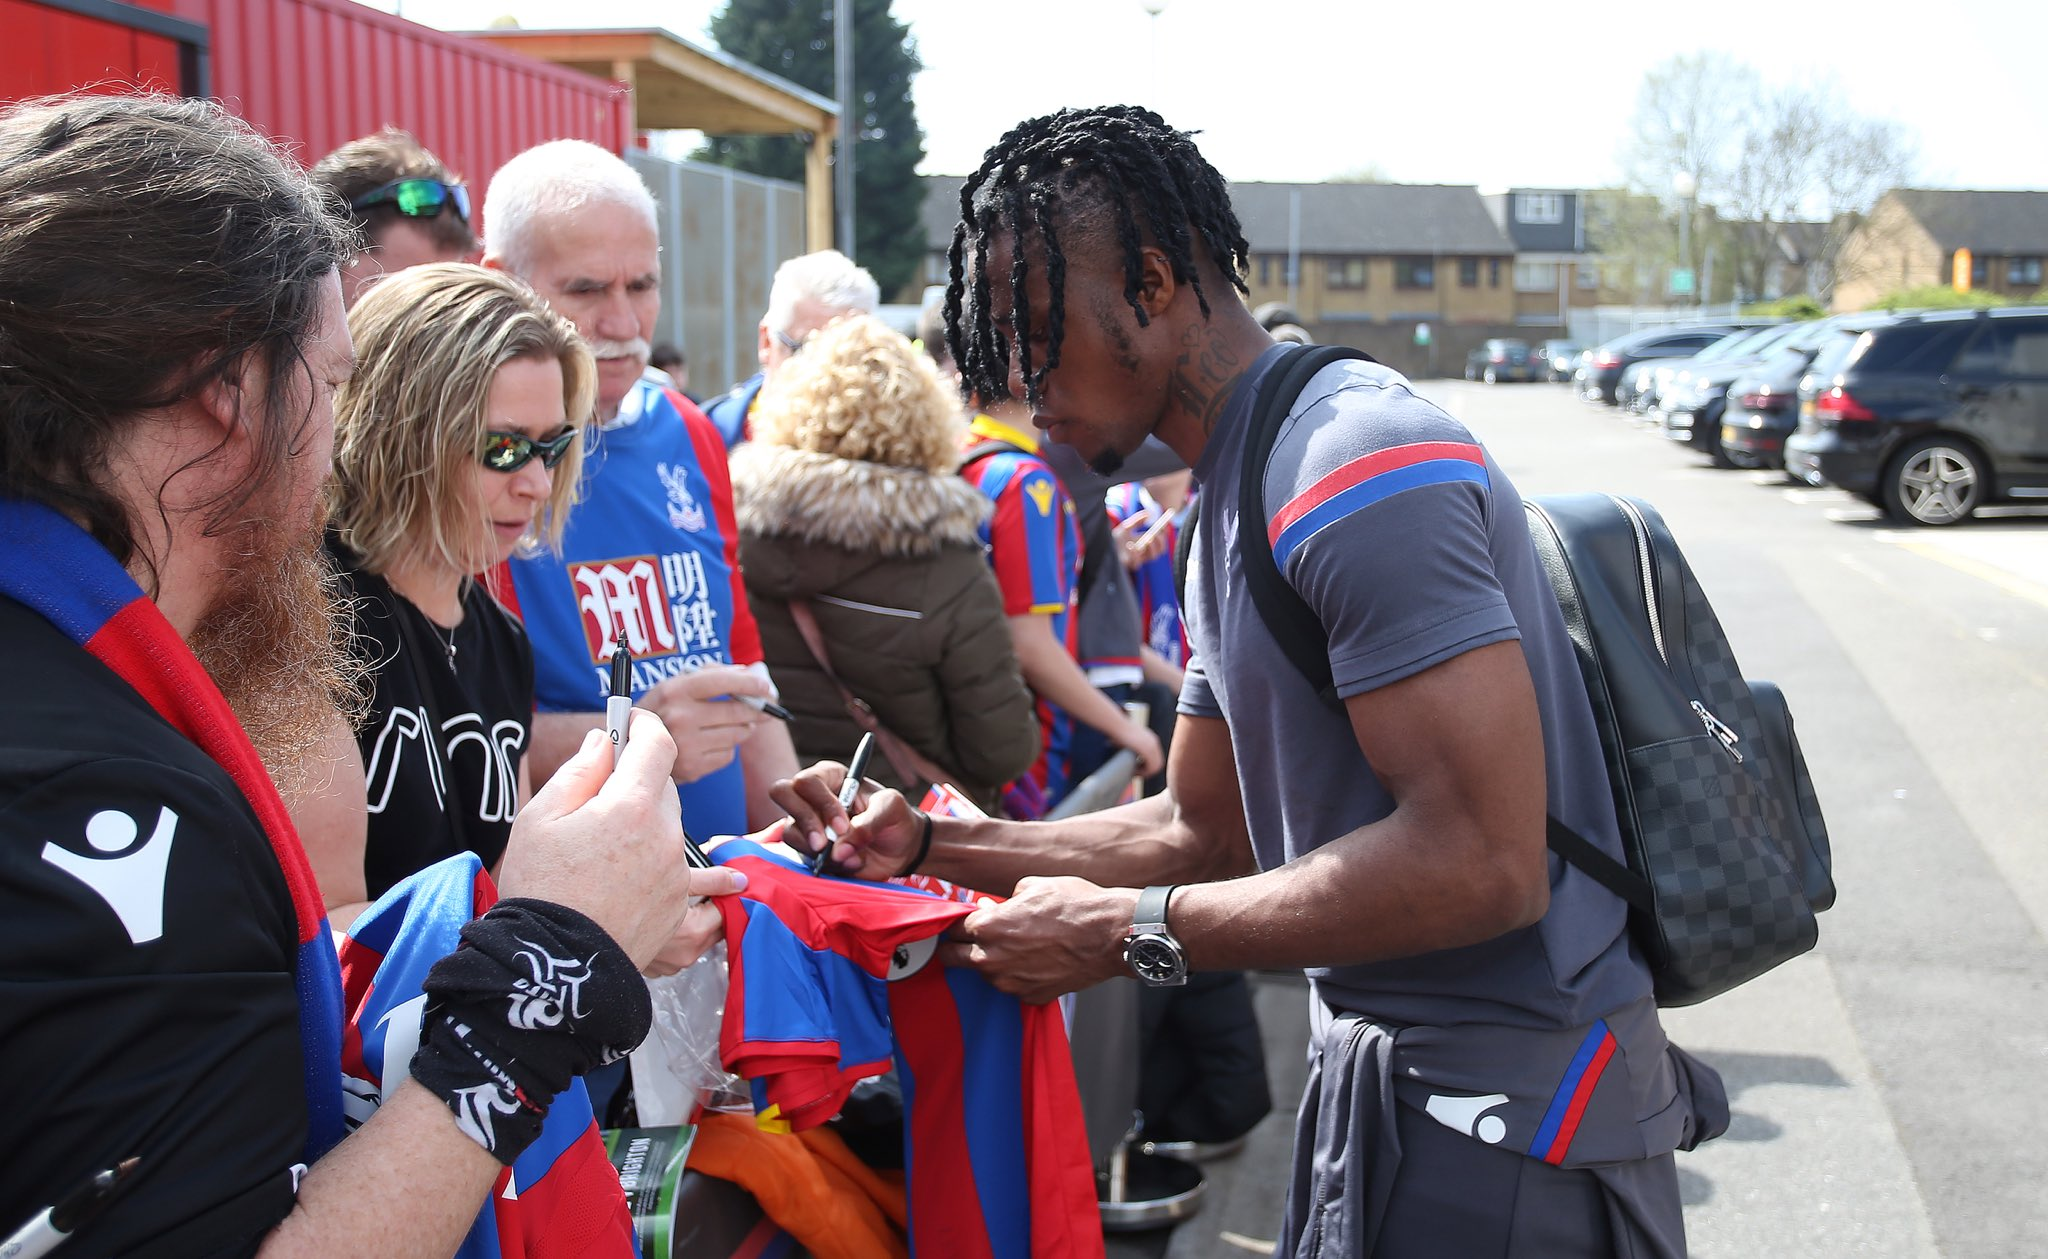 Always appreciate the love and support ���� #CPFCFamily #GodIsGreat https://t.co/hdDCf1MS65